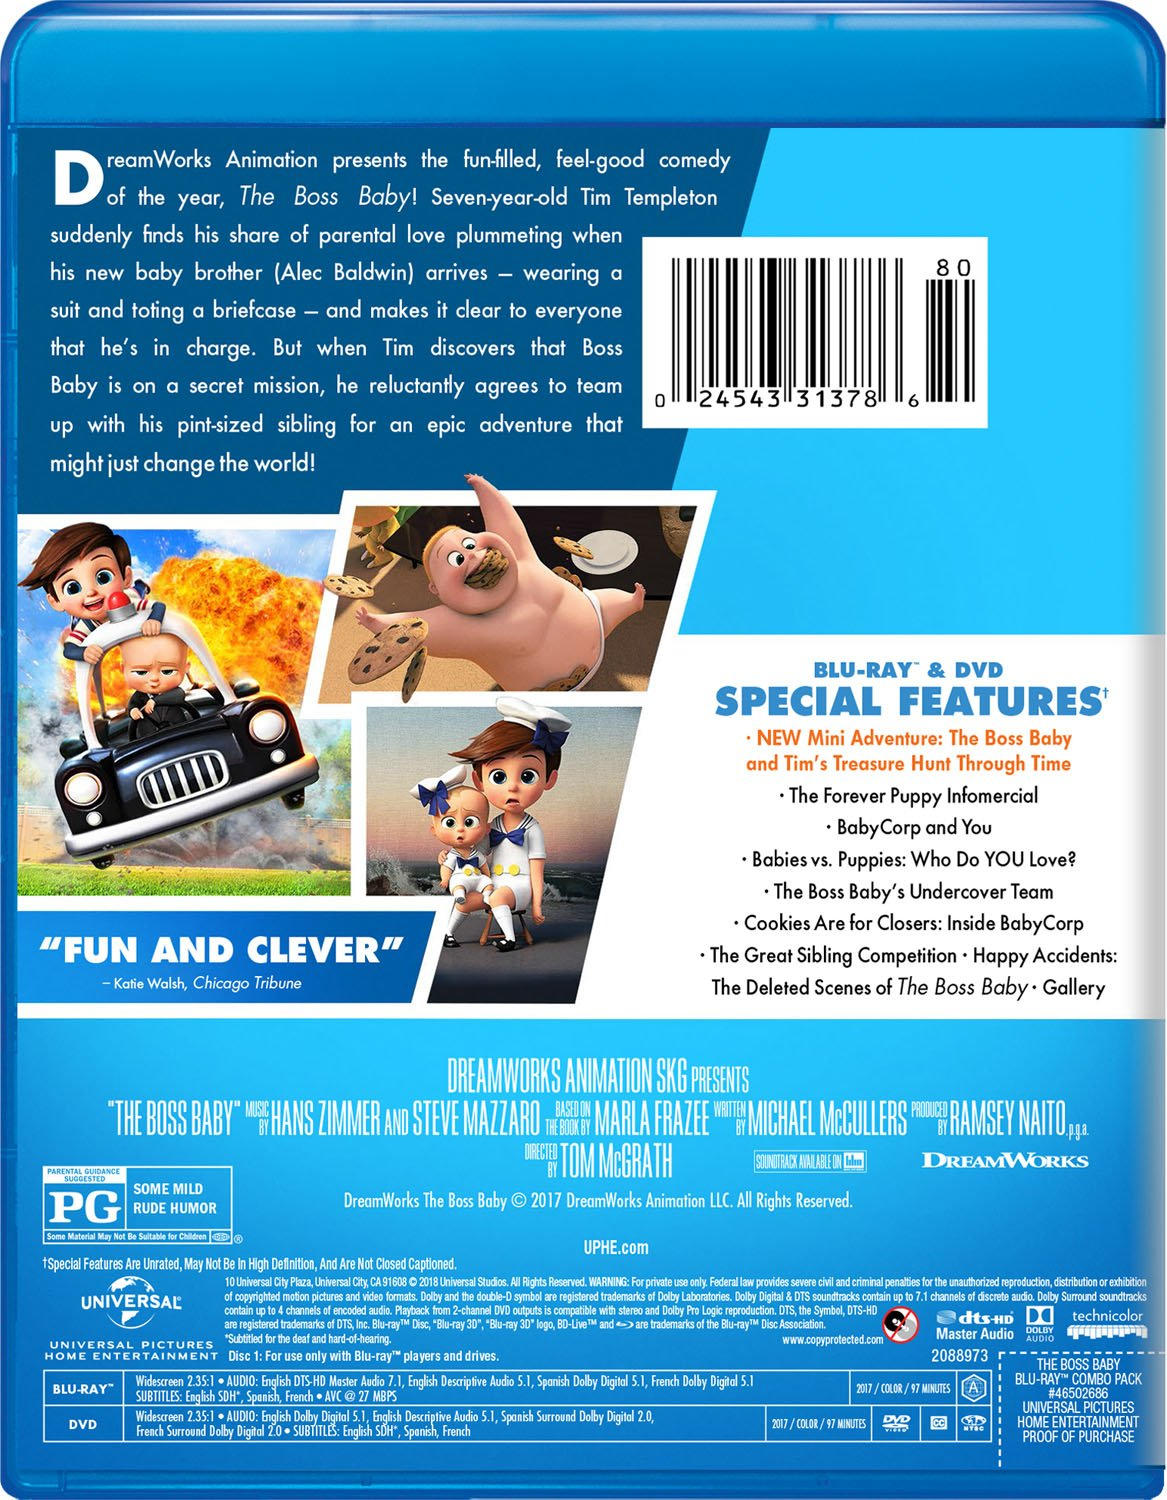 6a7e0a4cf Amazon.com: The Boss Baby [Blu-ray]: Alec Baldwin, Steve Buscemi, Jimmy  Kimmel, Lisa Kudrow, Miles Bakshi, Tobey Maguire, Tom McGrath, Ramsey  Naito, ...